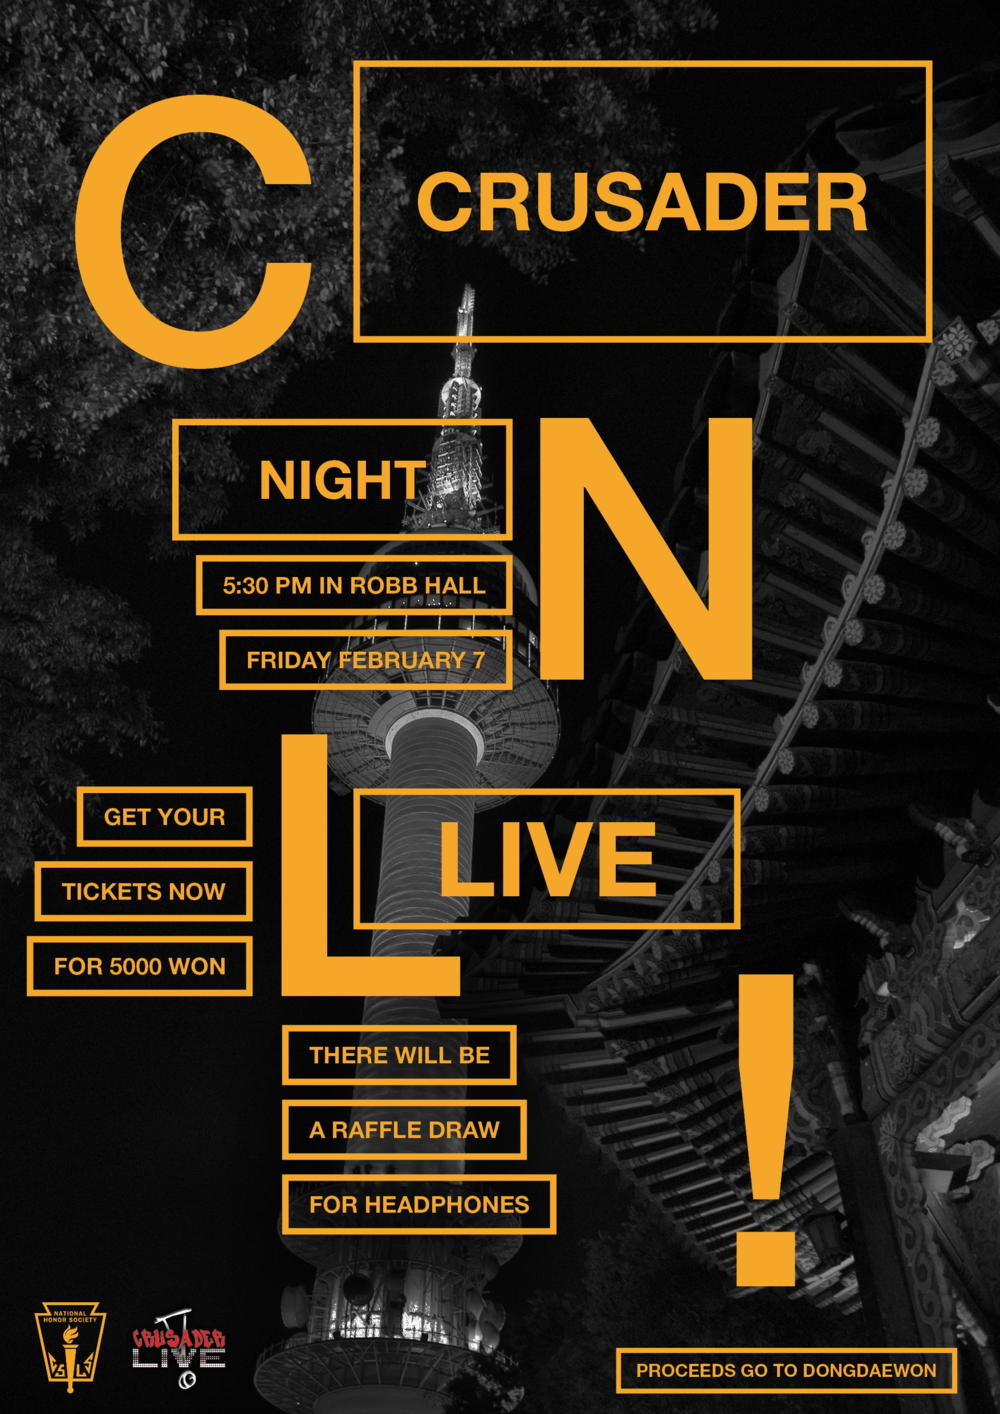 NHS Crusader Night Live Final Poster